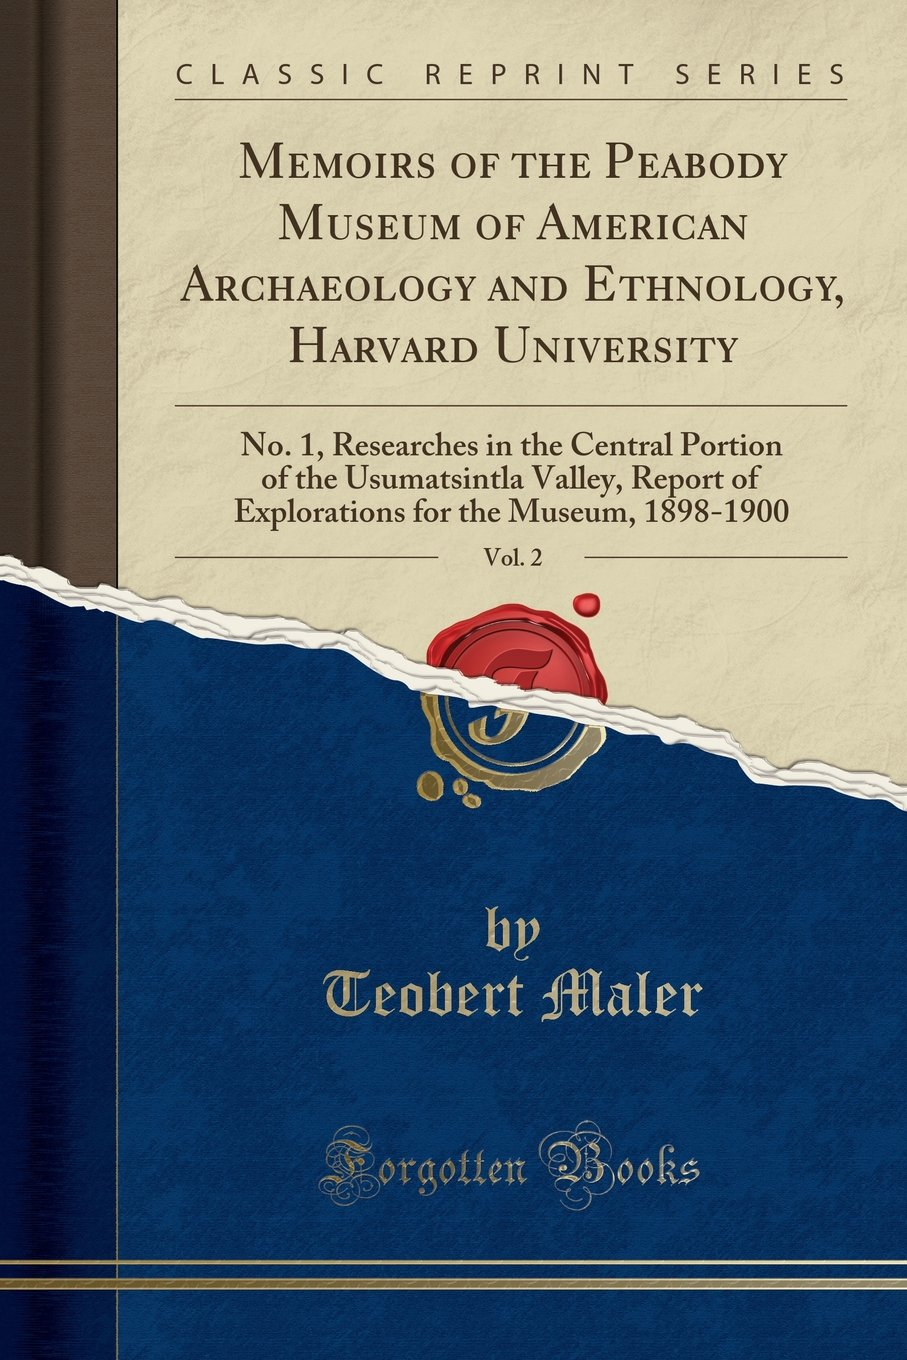 Memoirs of the Peabody Museum of American Archaeology and Ethnology, Harvard University, Vol. 2: No. 1, Researches in the Central Portion of the ... for the Museum, 1898-1900 (Classic Reprint) PDF